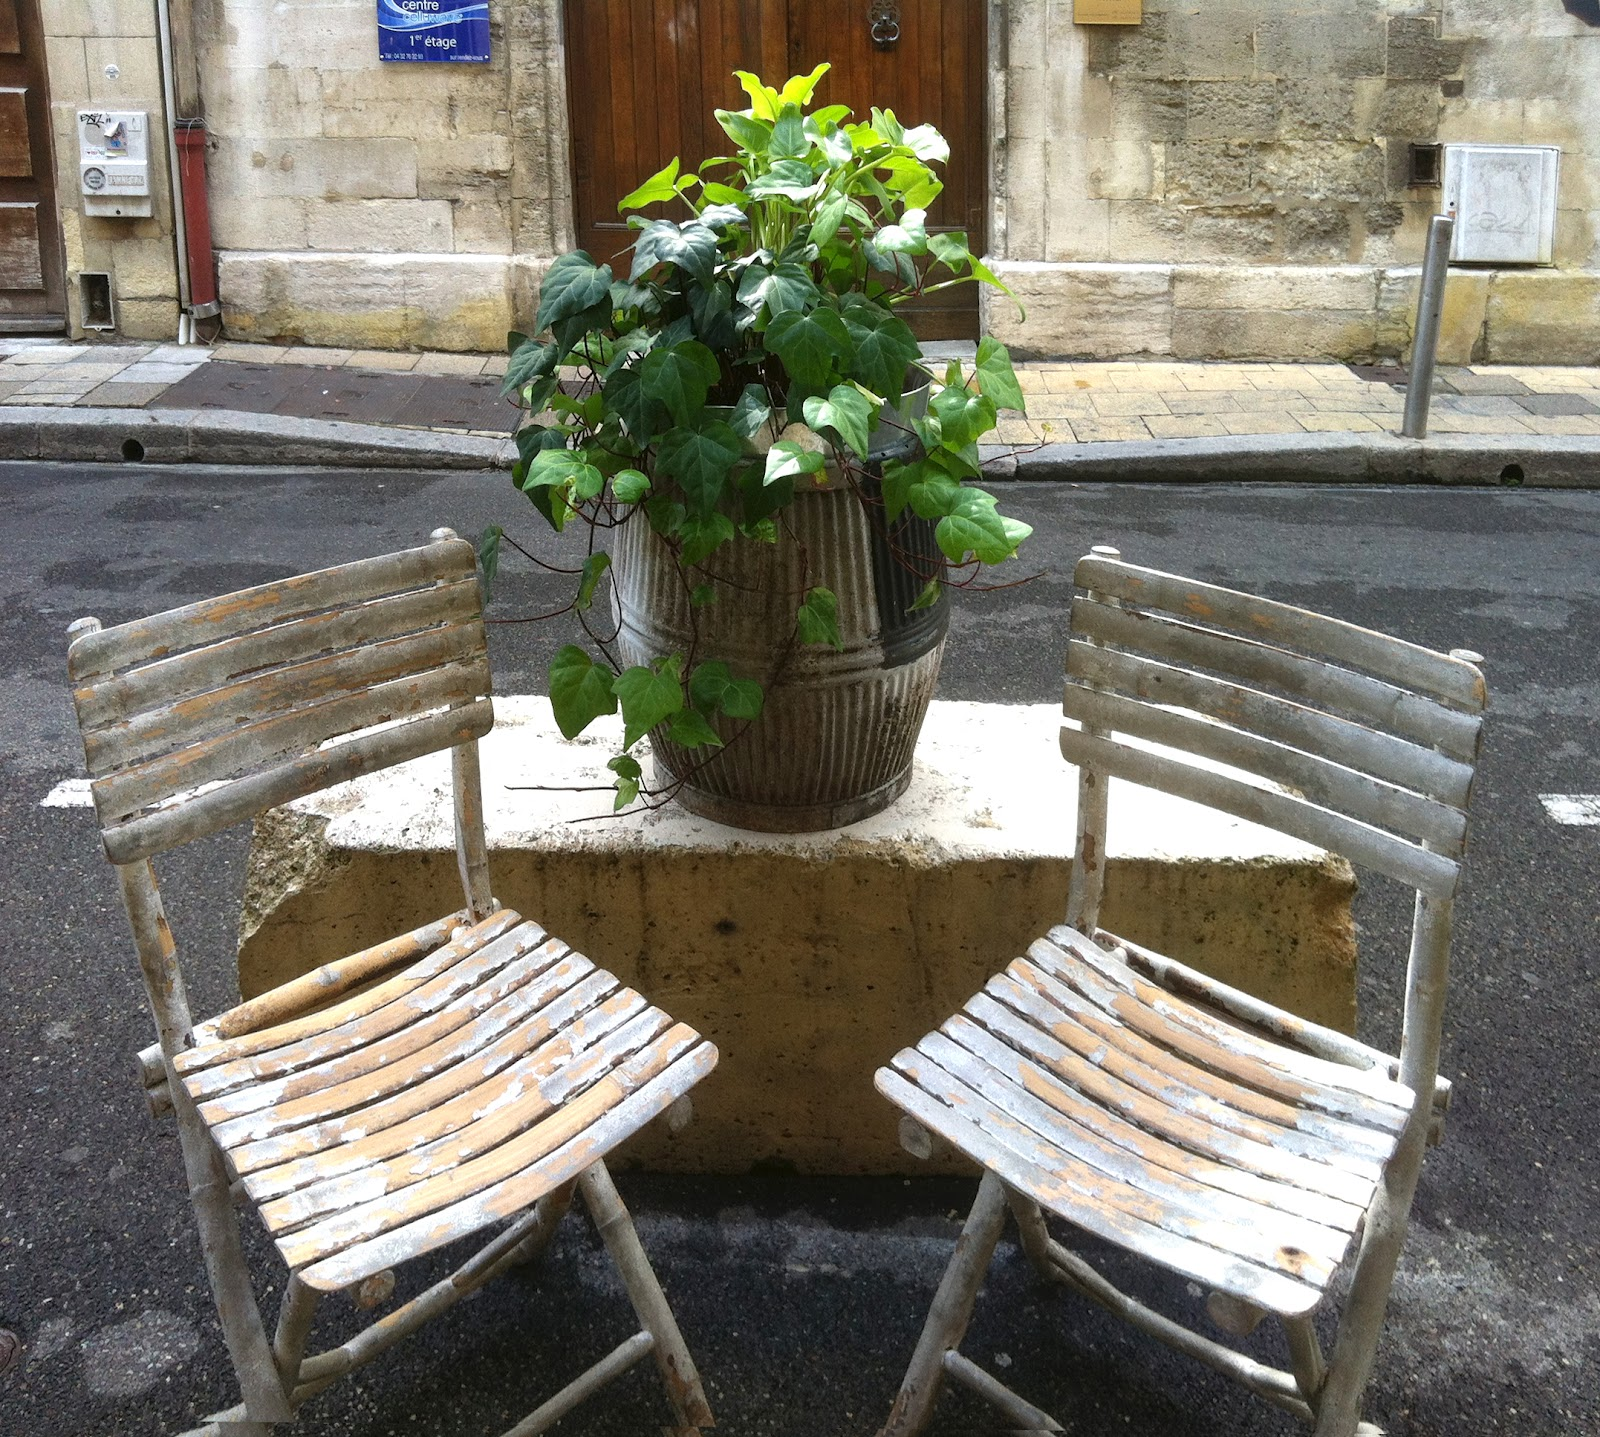 Chic provence we 39 re back from a chic provence design tour - Jardin de provence ...